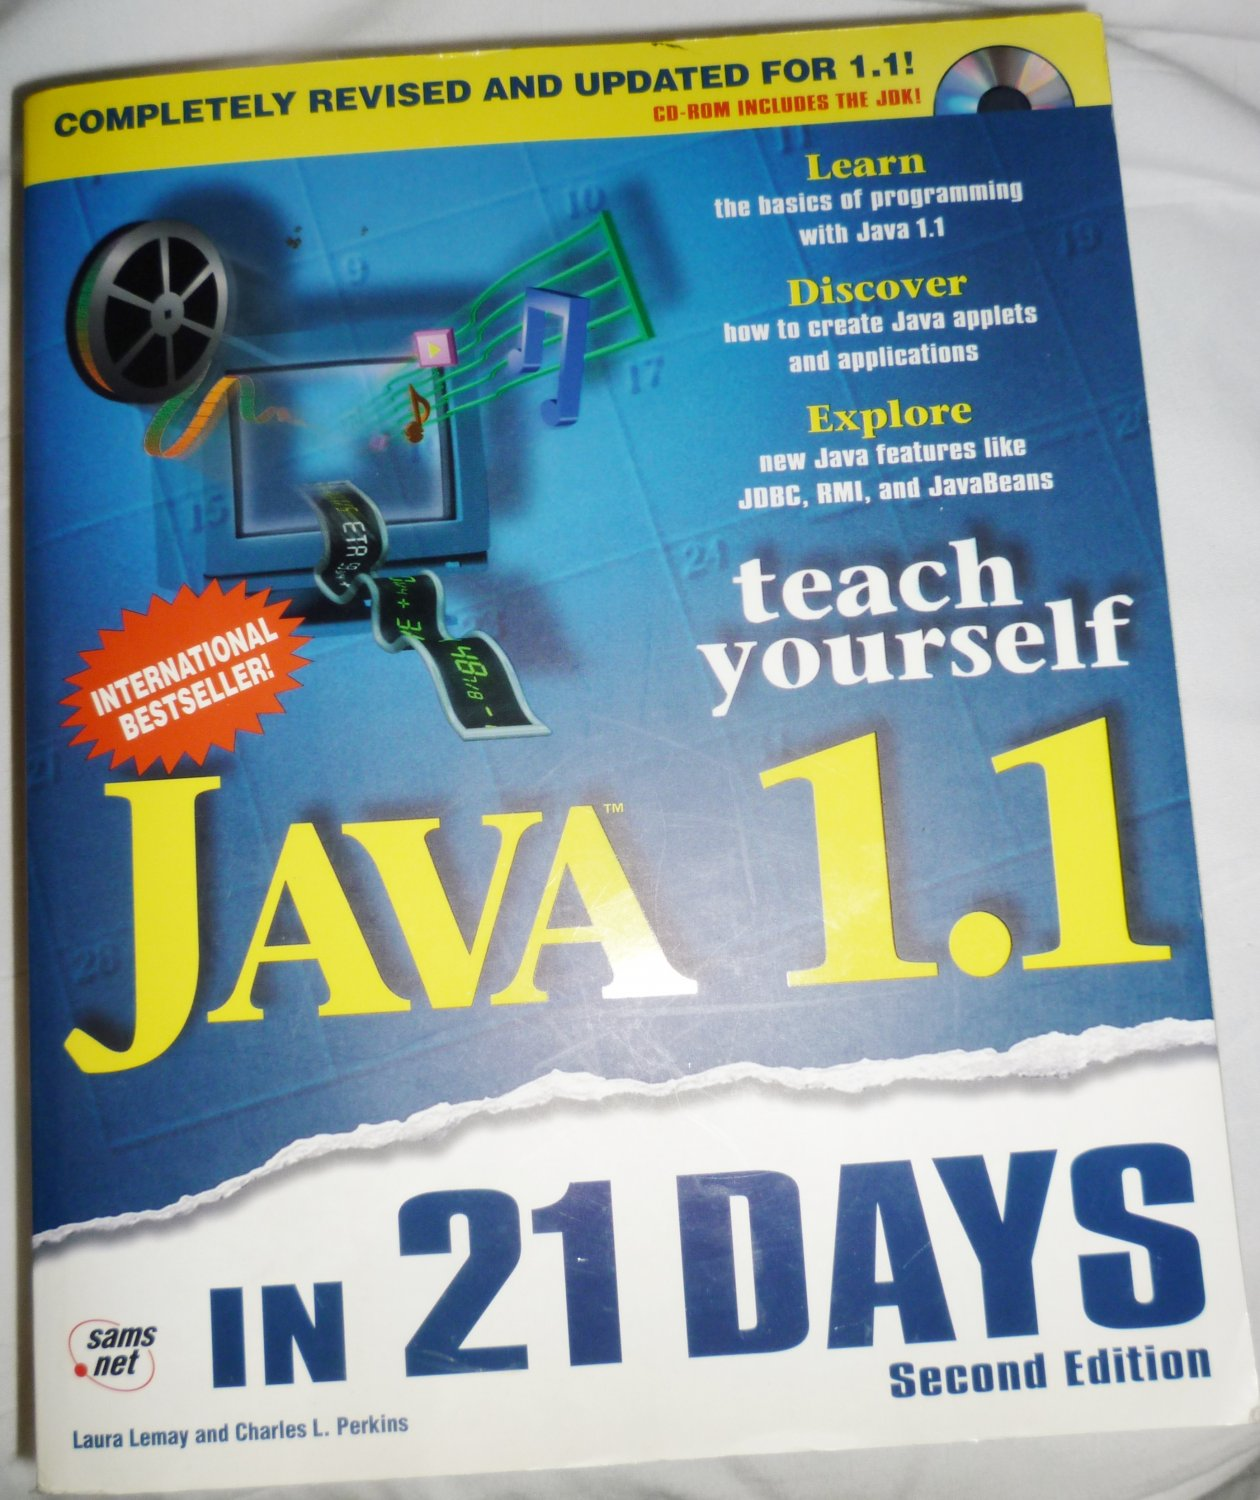 JAVA 1.1 IN 21 DAYS TEACH YOURSELF SECOND EDITION missing CD SECOND EDITION